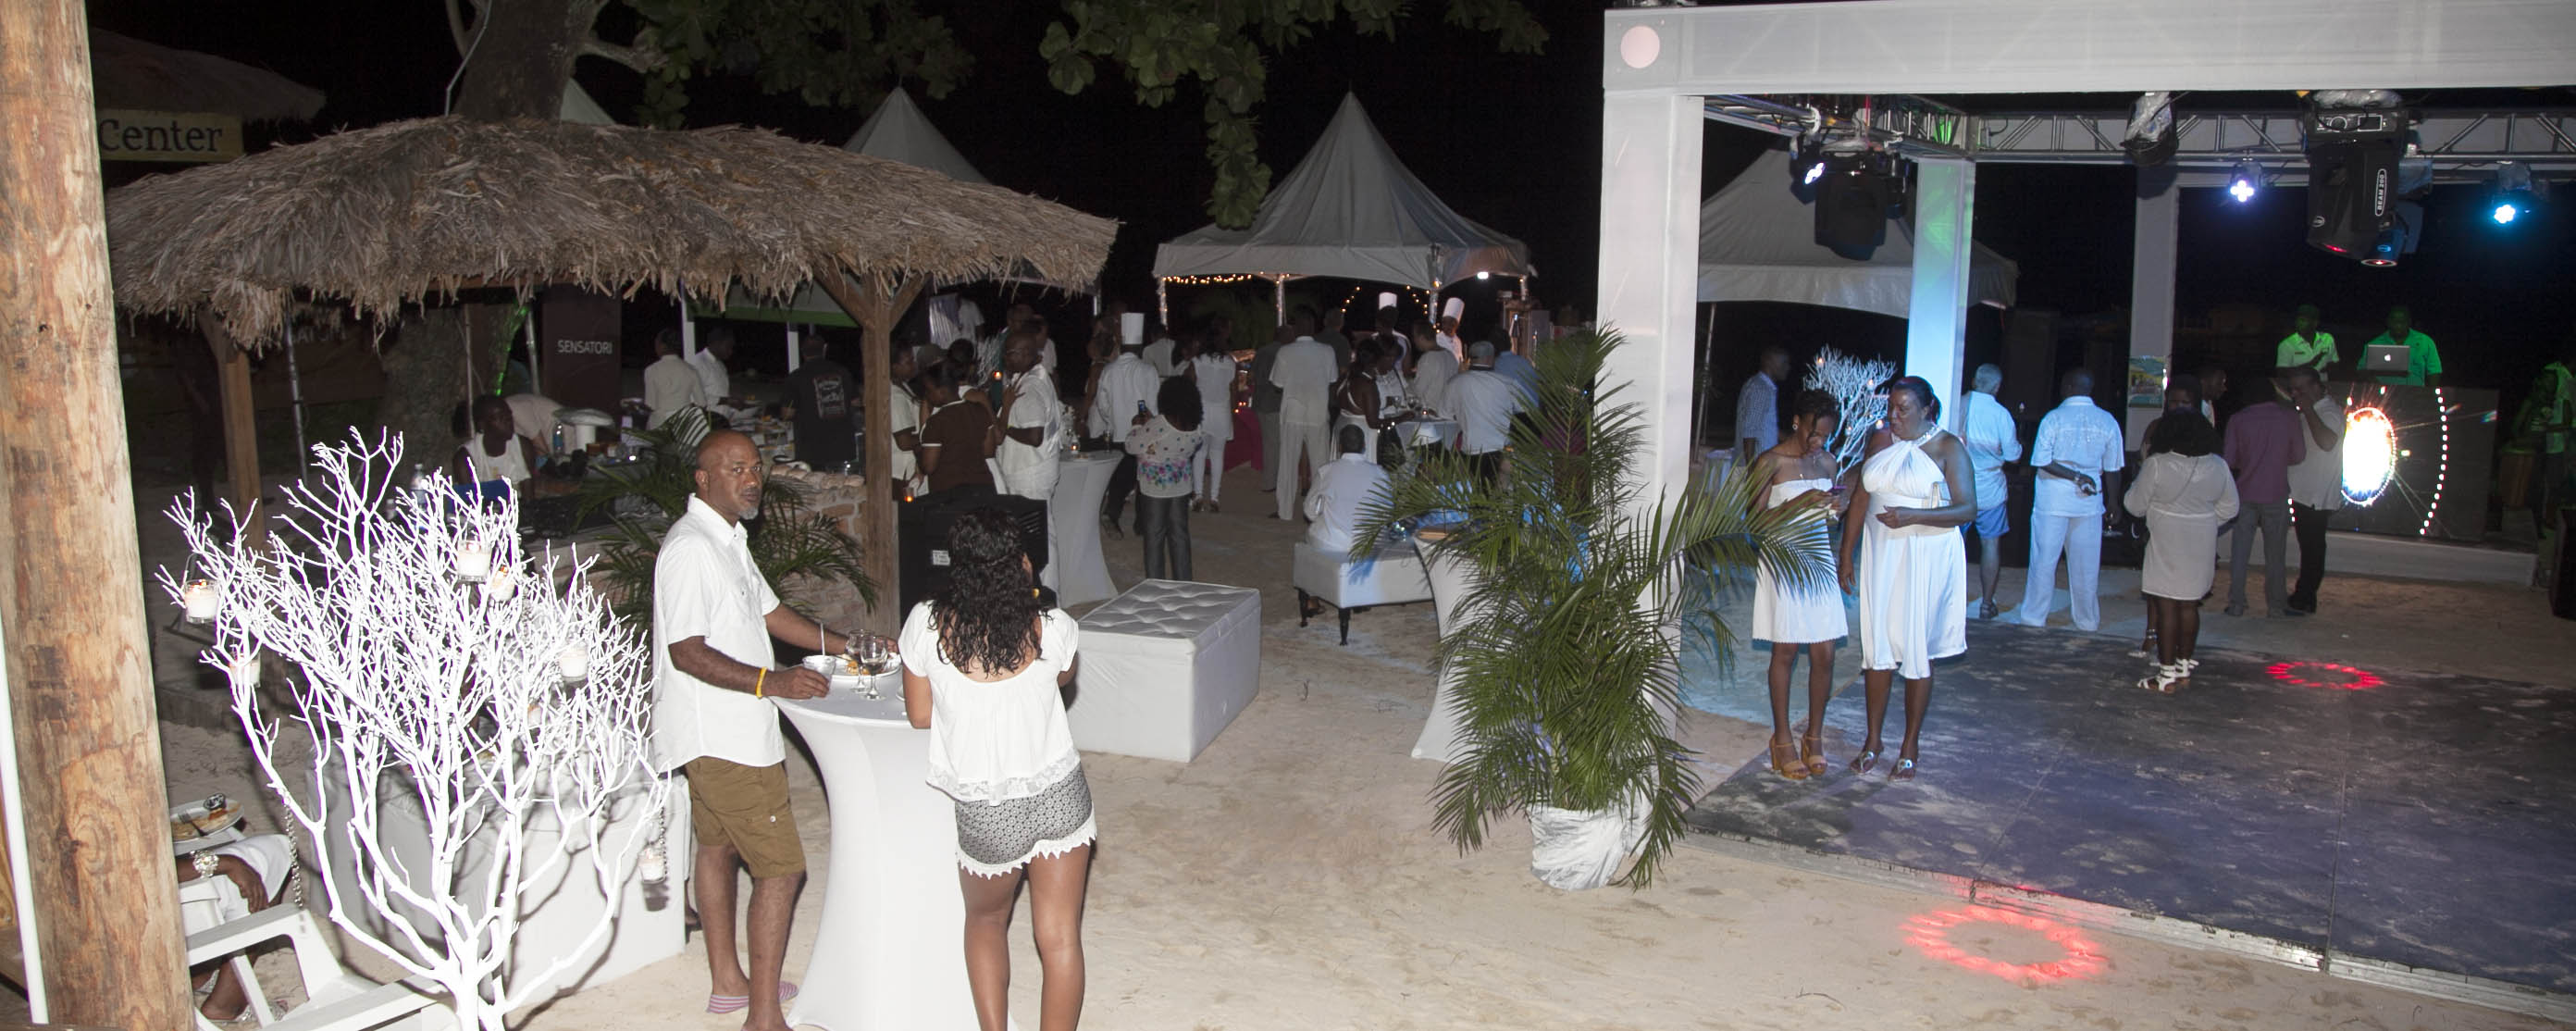 NCC International Food and Wine Event 2016, Negril Jamaica